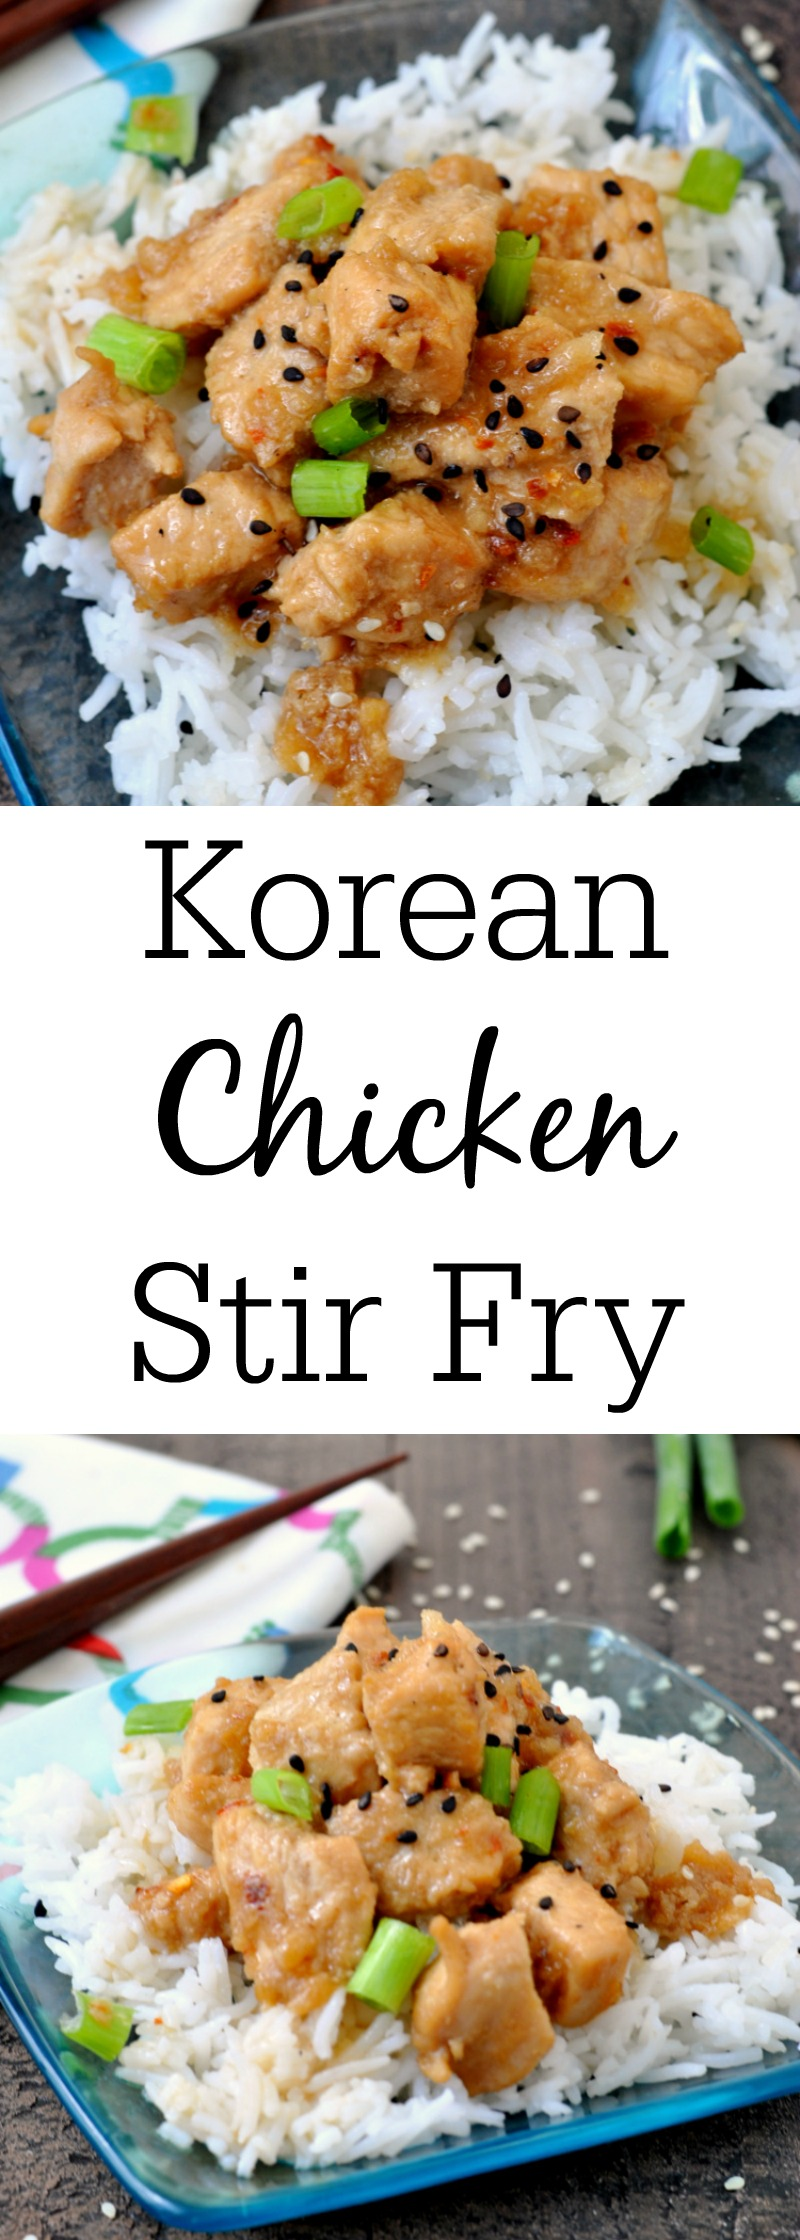 Korean Chicken Stir Fry